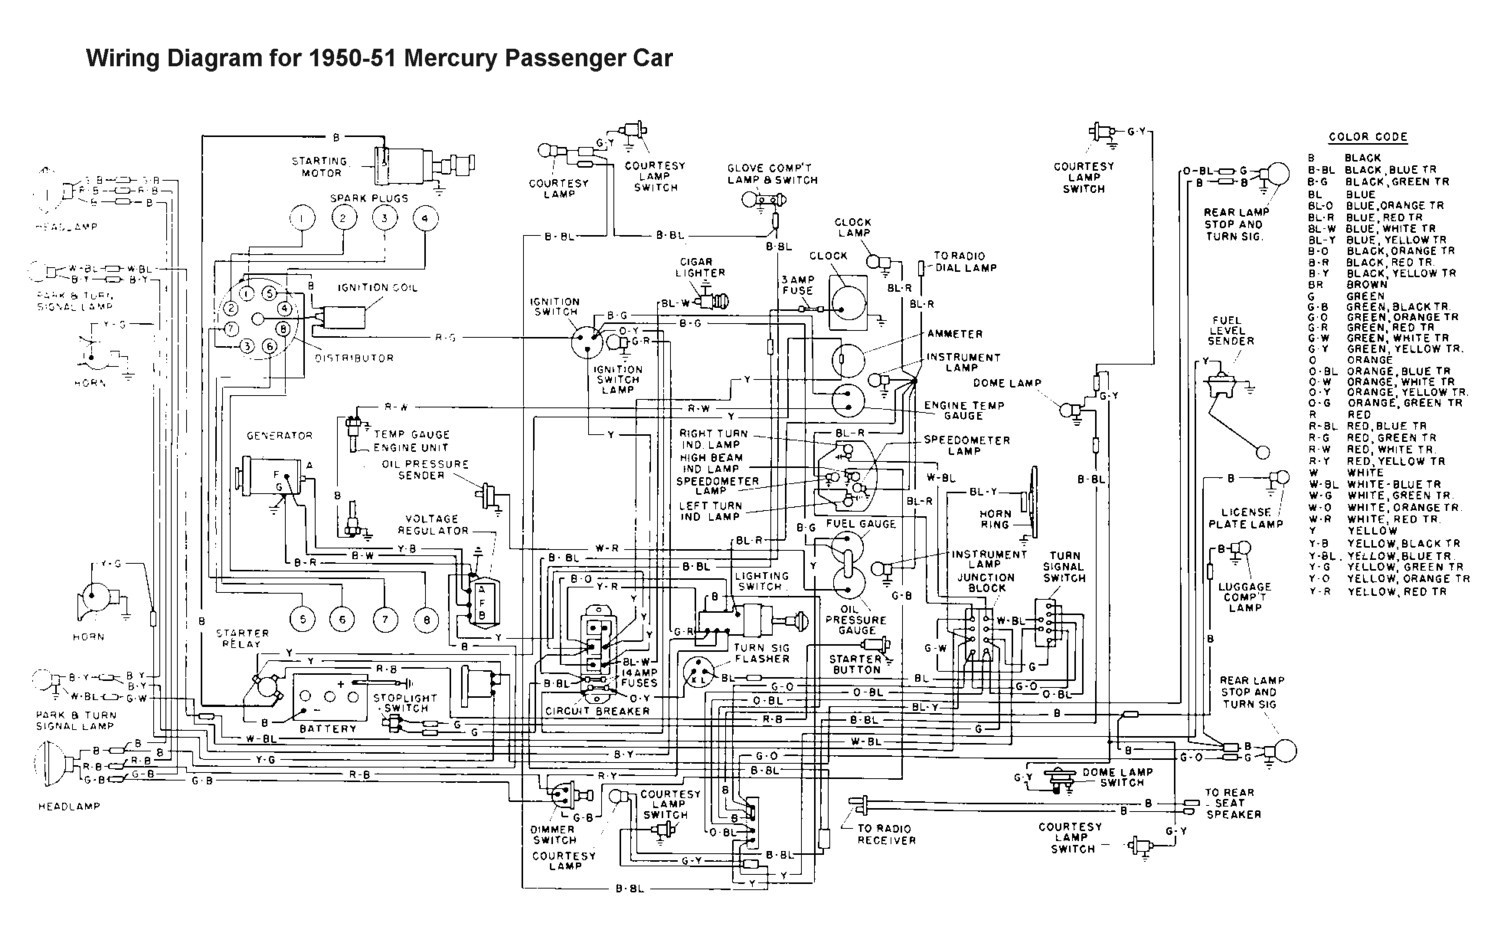 Flathead_Electrical_wiring1950 51merc flathead electrical wiring diagrams ford car wiring diagrams at panicattacktreatment.co